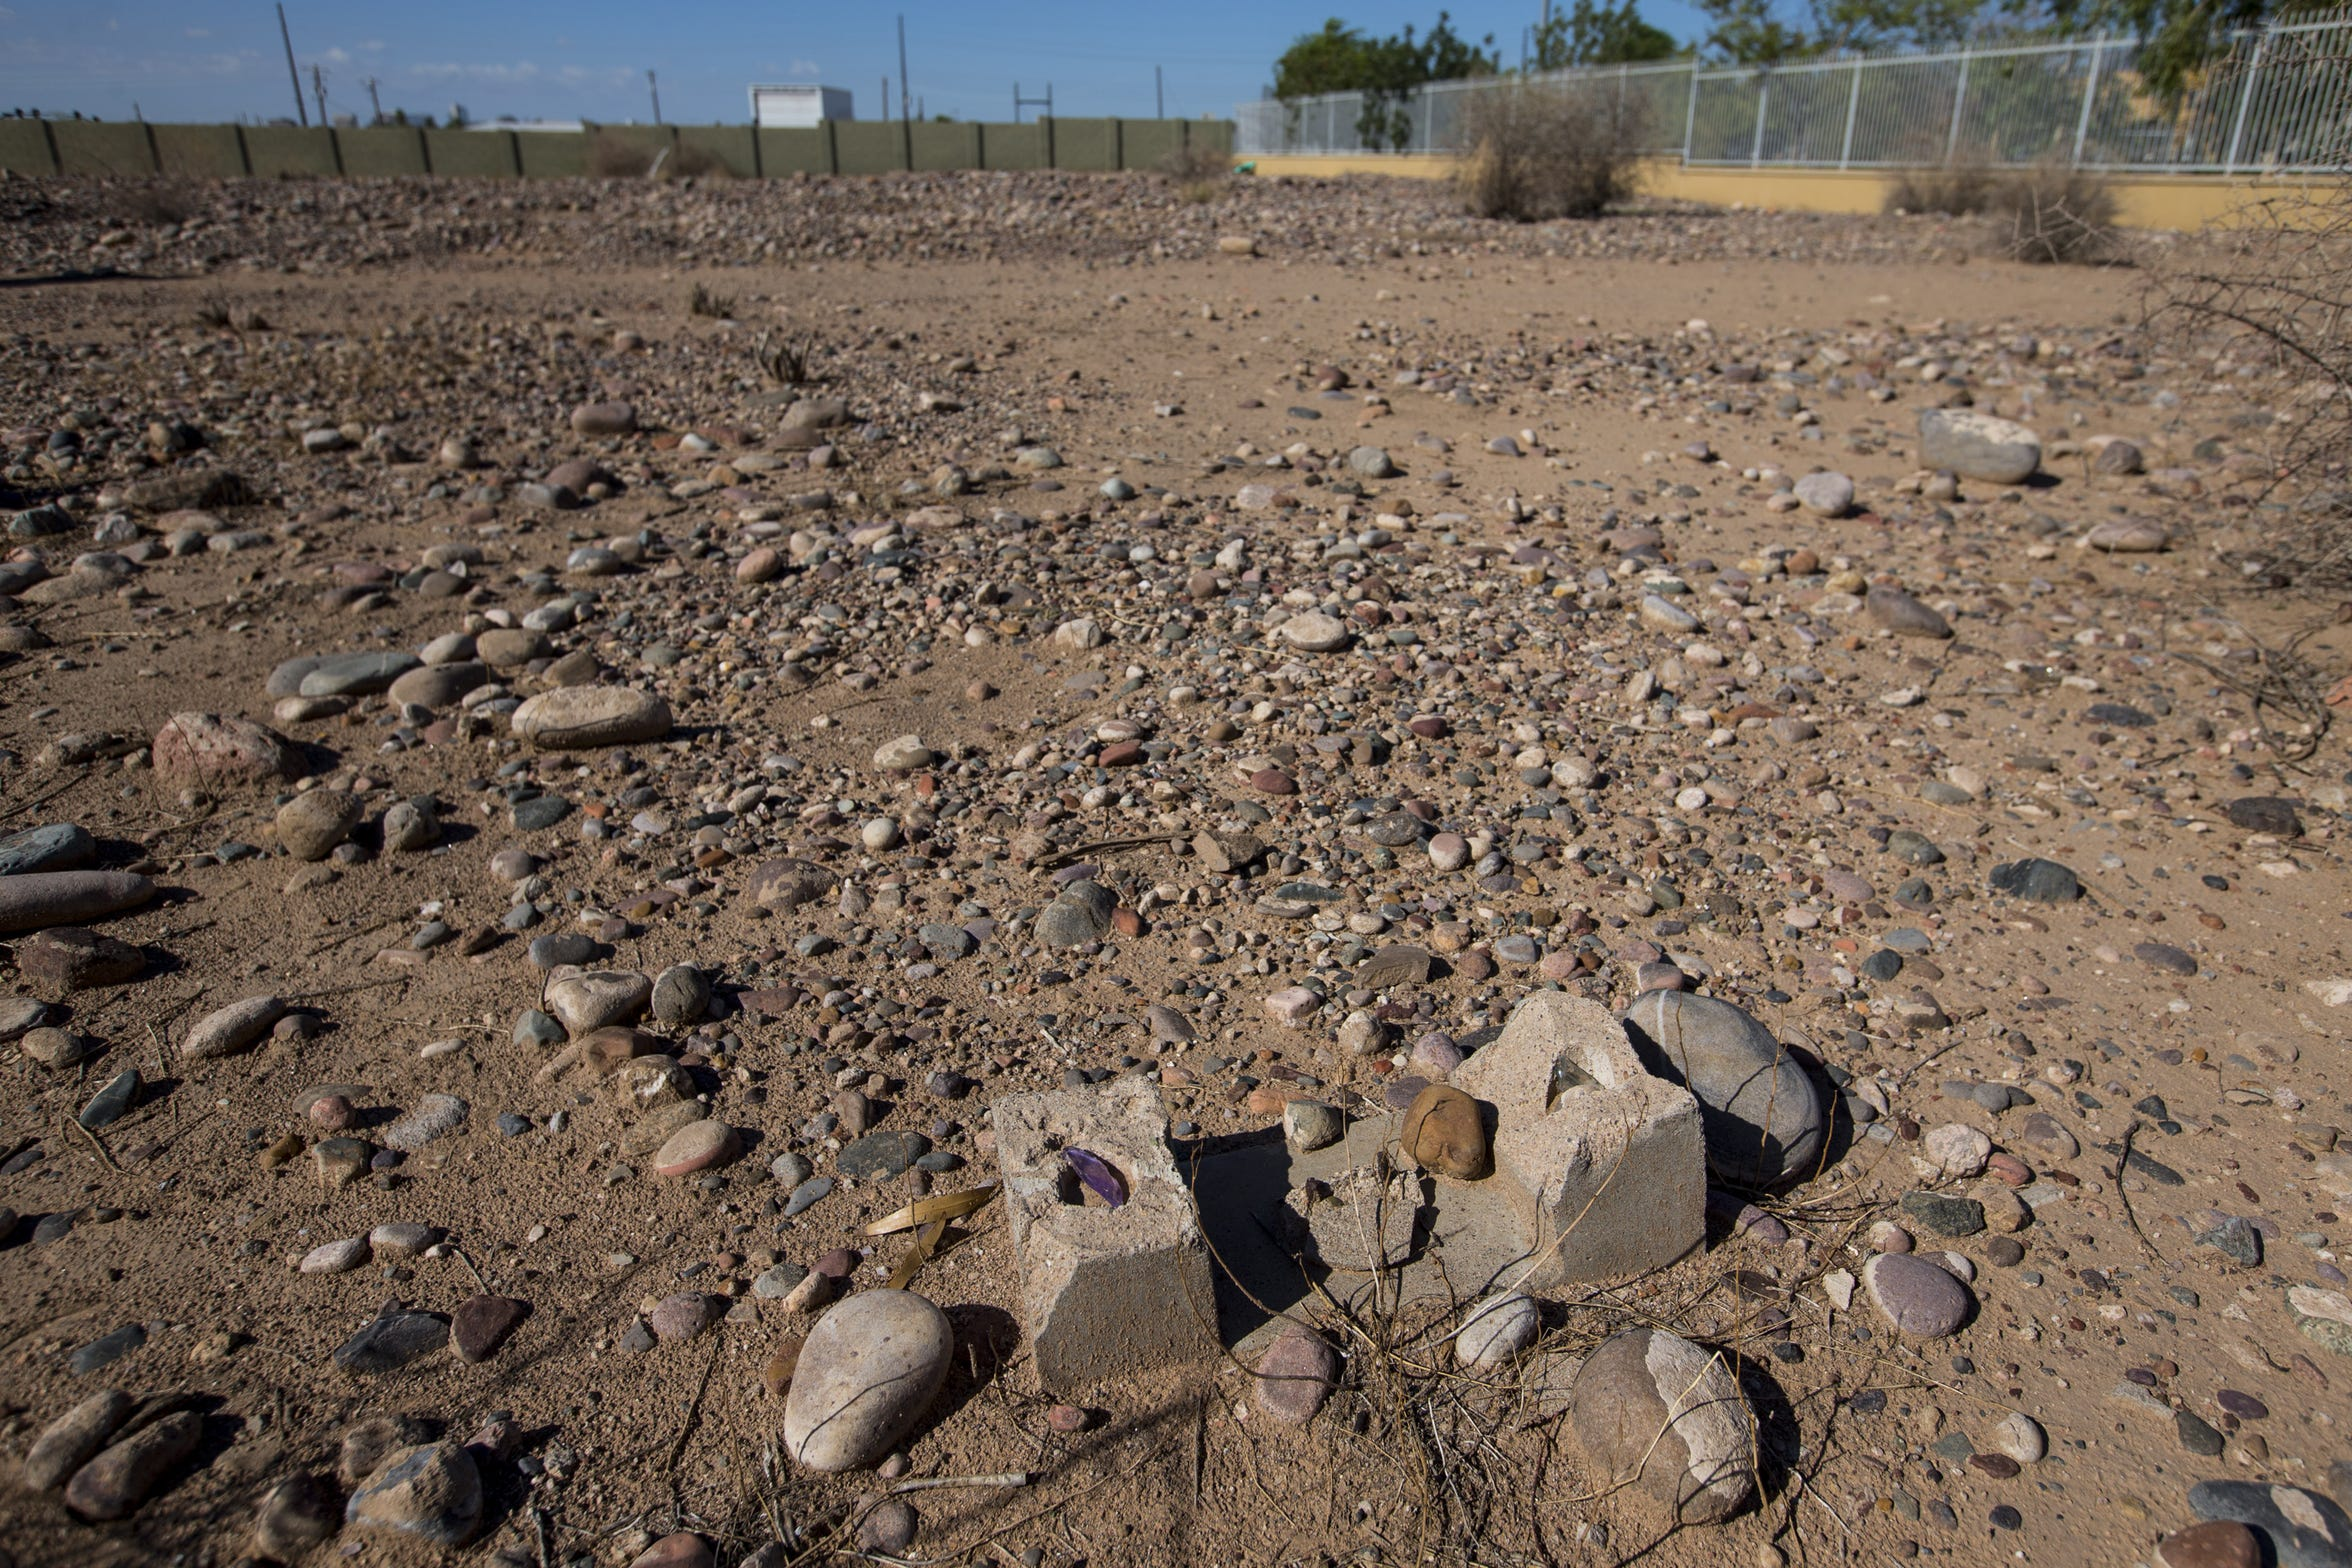 The grave from which an iron cross was stolen is pictured Sept. 20, 2018, at Sotelo-Heard Cemetery in Phoenix. Some headstones from the historic cemetery have been moved to their current location to prevent vandalization.